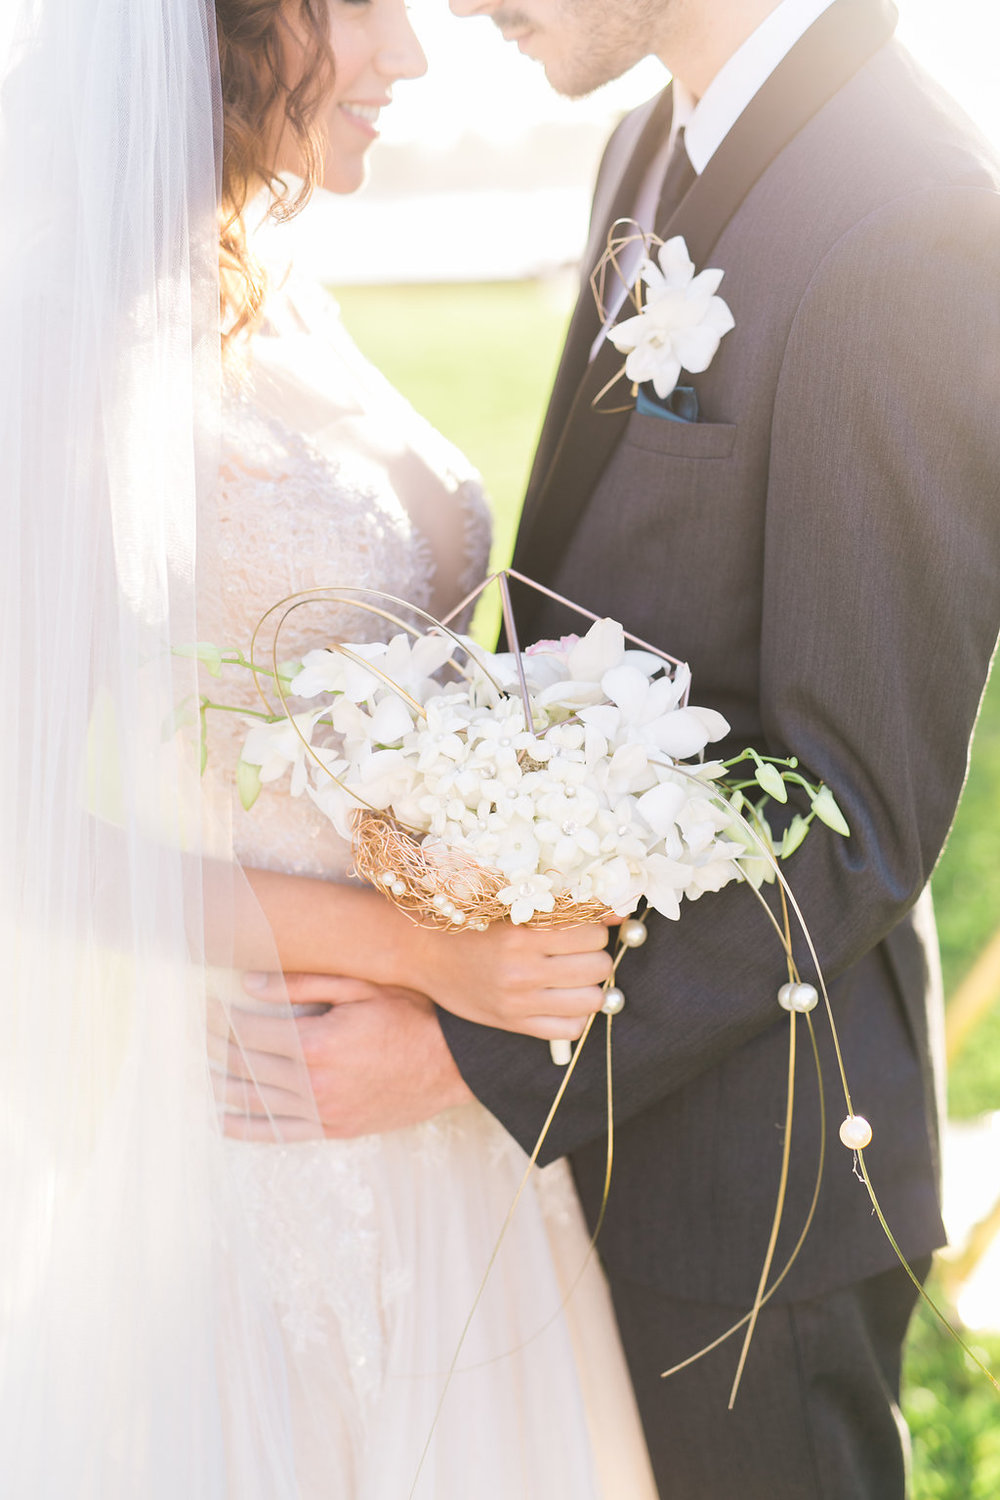 And how unique and creative is this bouquet and boutonniere by Flowerchild?!